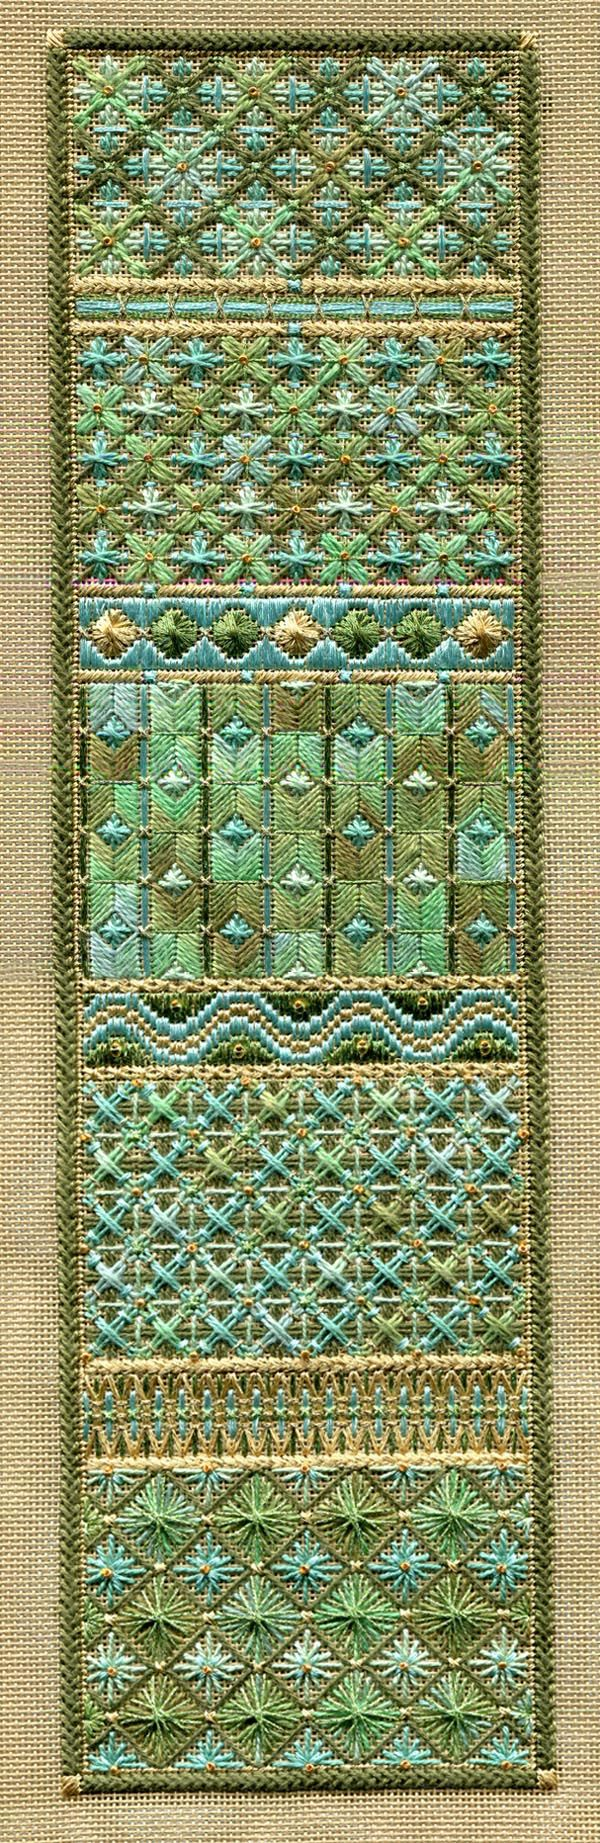 """One Long Panel 4.5"""" x 16.5"""" on 18 ct sandstone canvas Pattern: $16.00 (includes beads ) - by Laura J Perin Designs"""